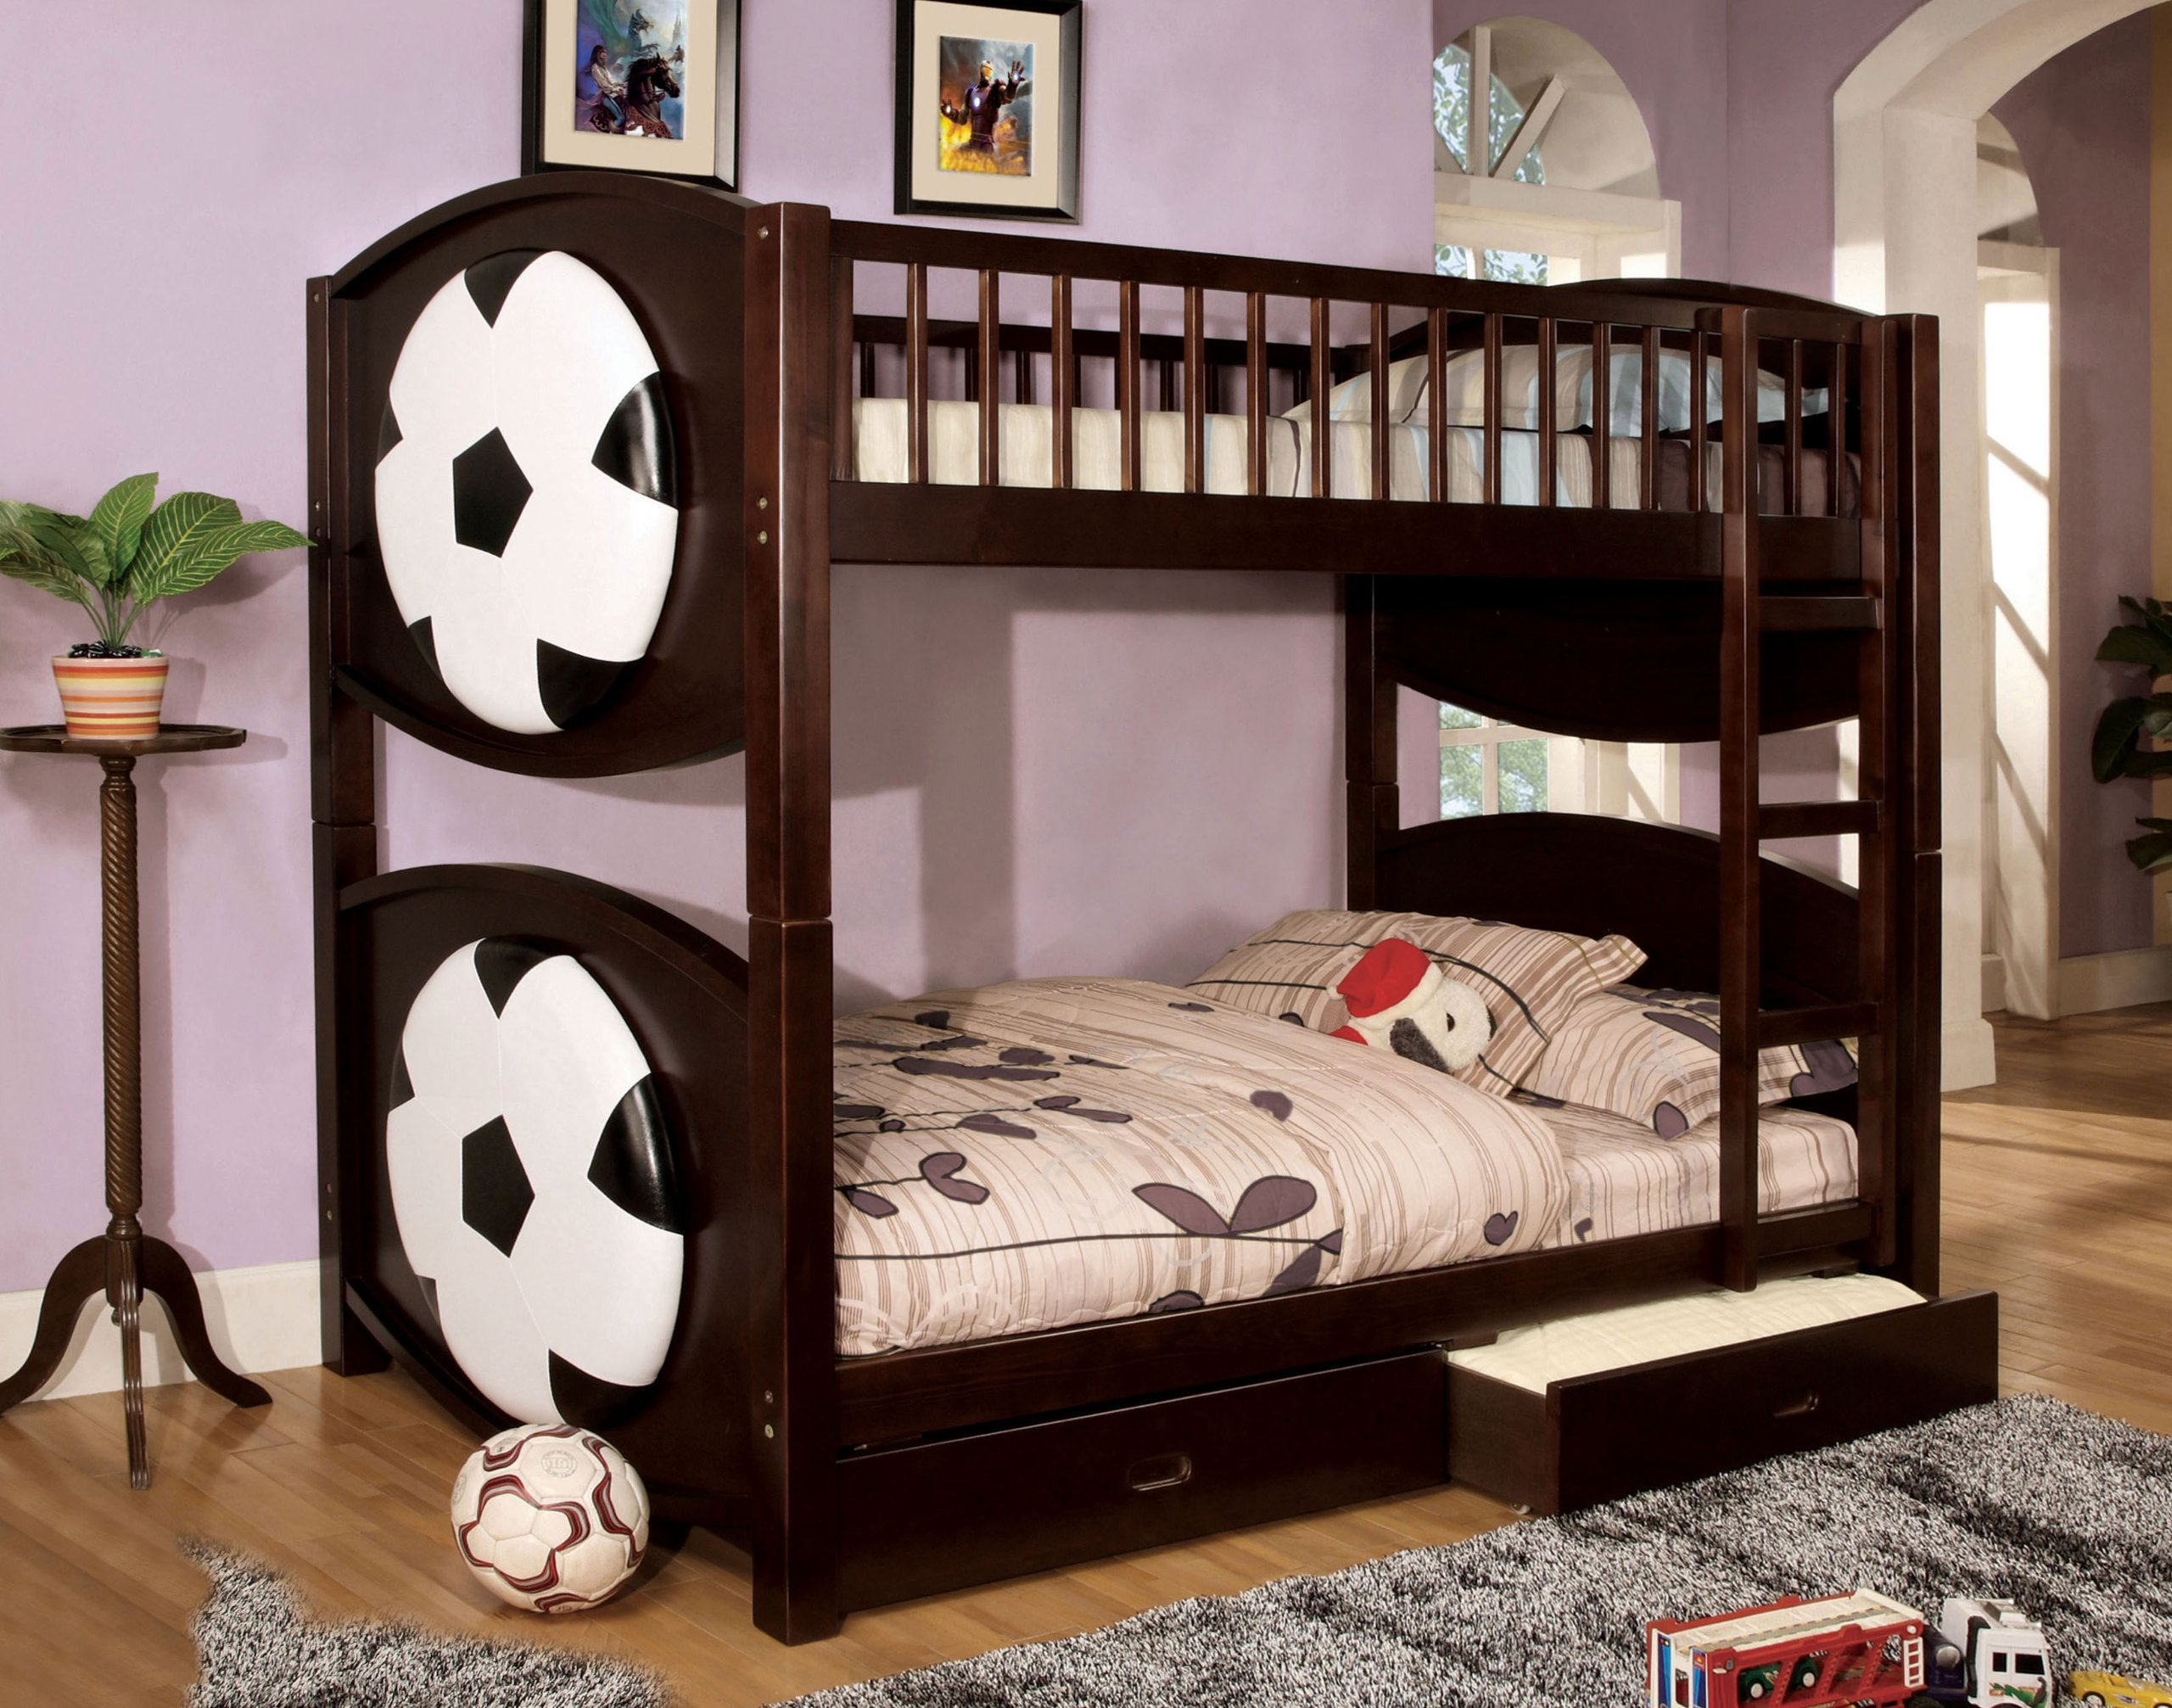 Furniture of America Soccer Bunk Bed with 2-Drawers, Twin by Furniture of America